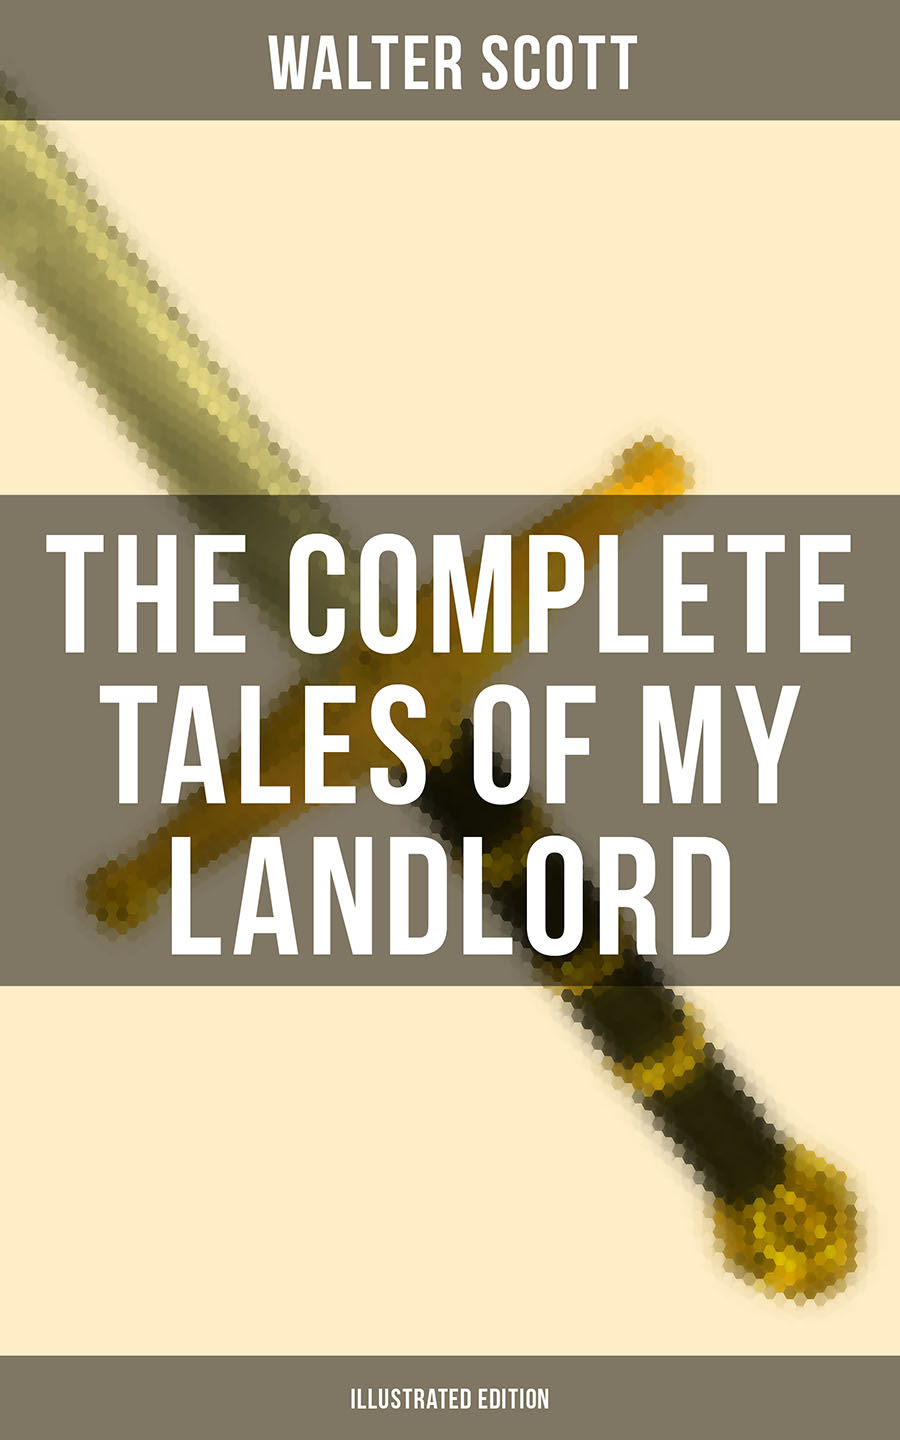 Walter Scott THE COMPLETE TALES OF MY LANDLORD (Illustrated Edition)